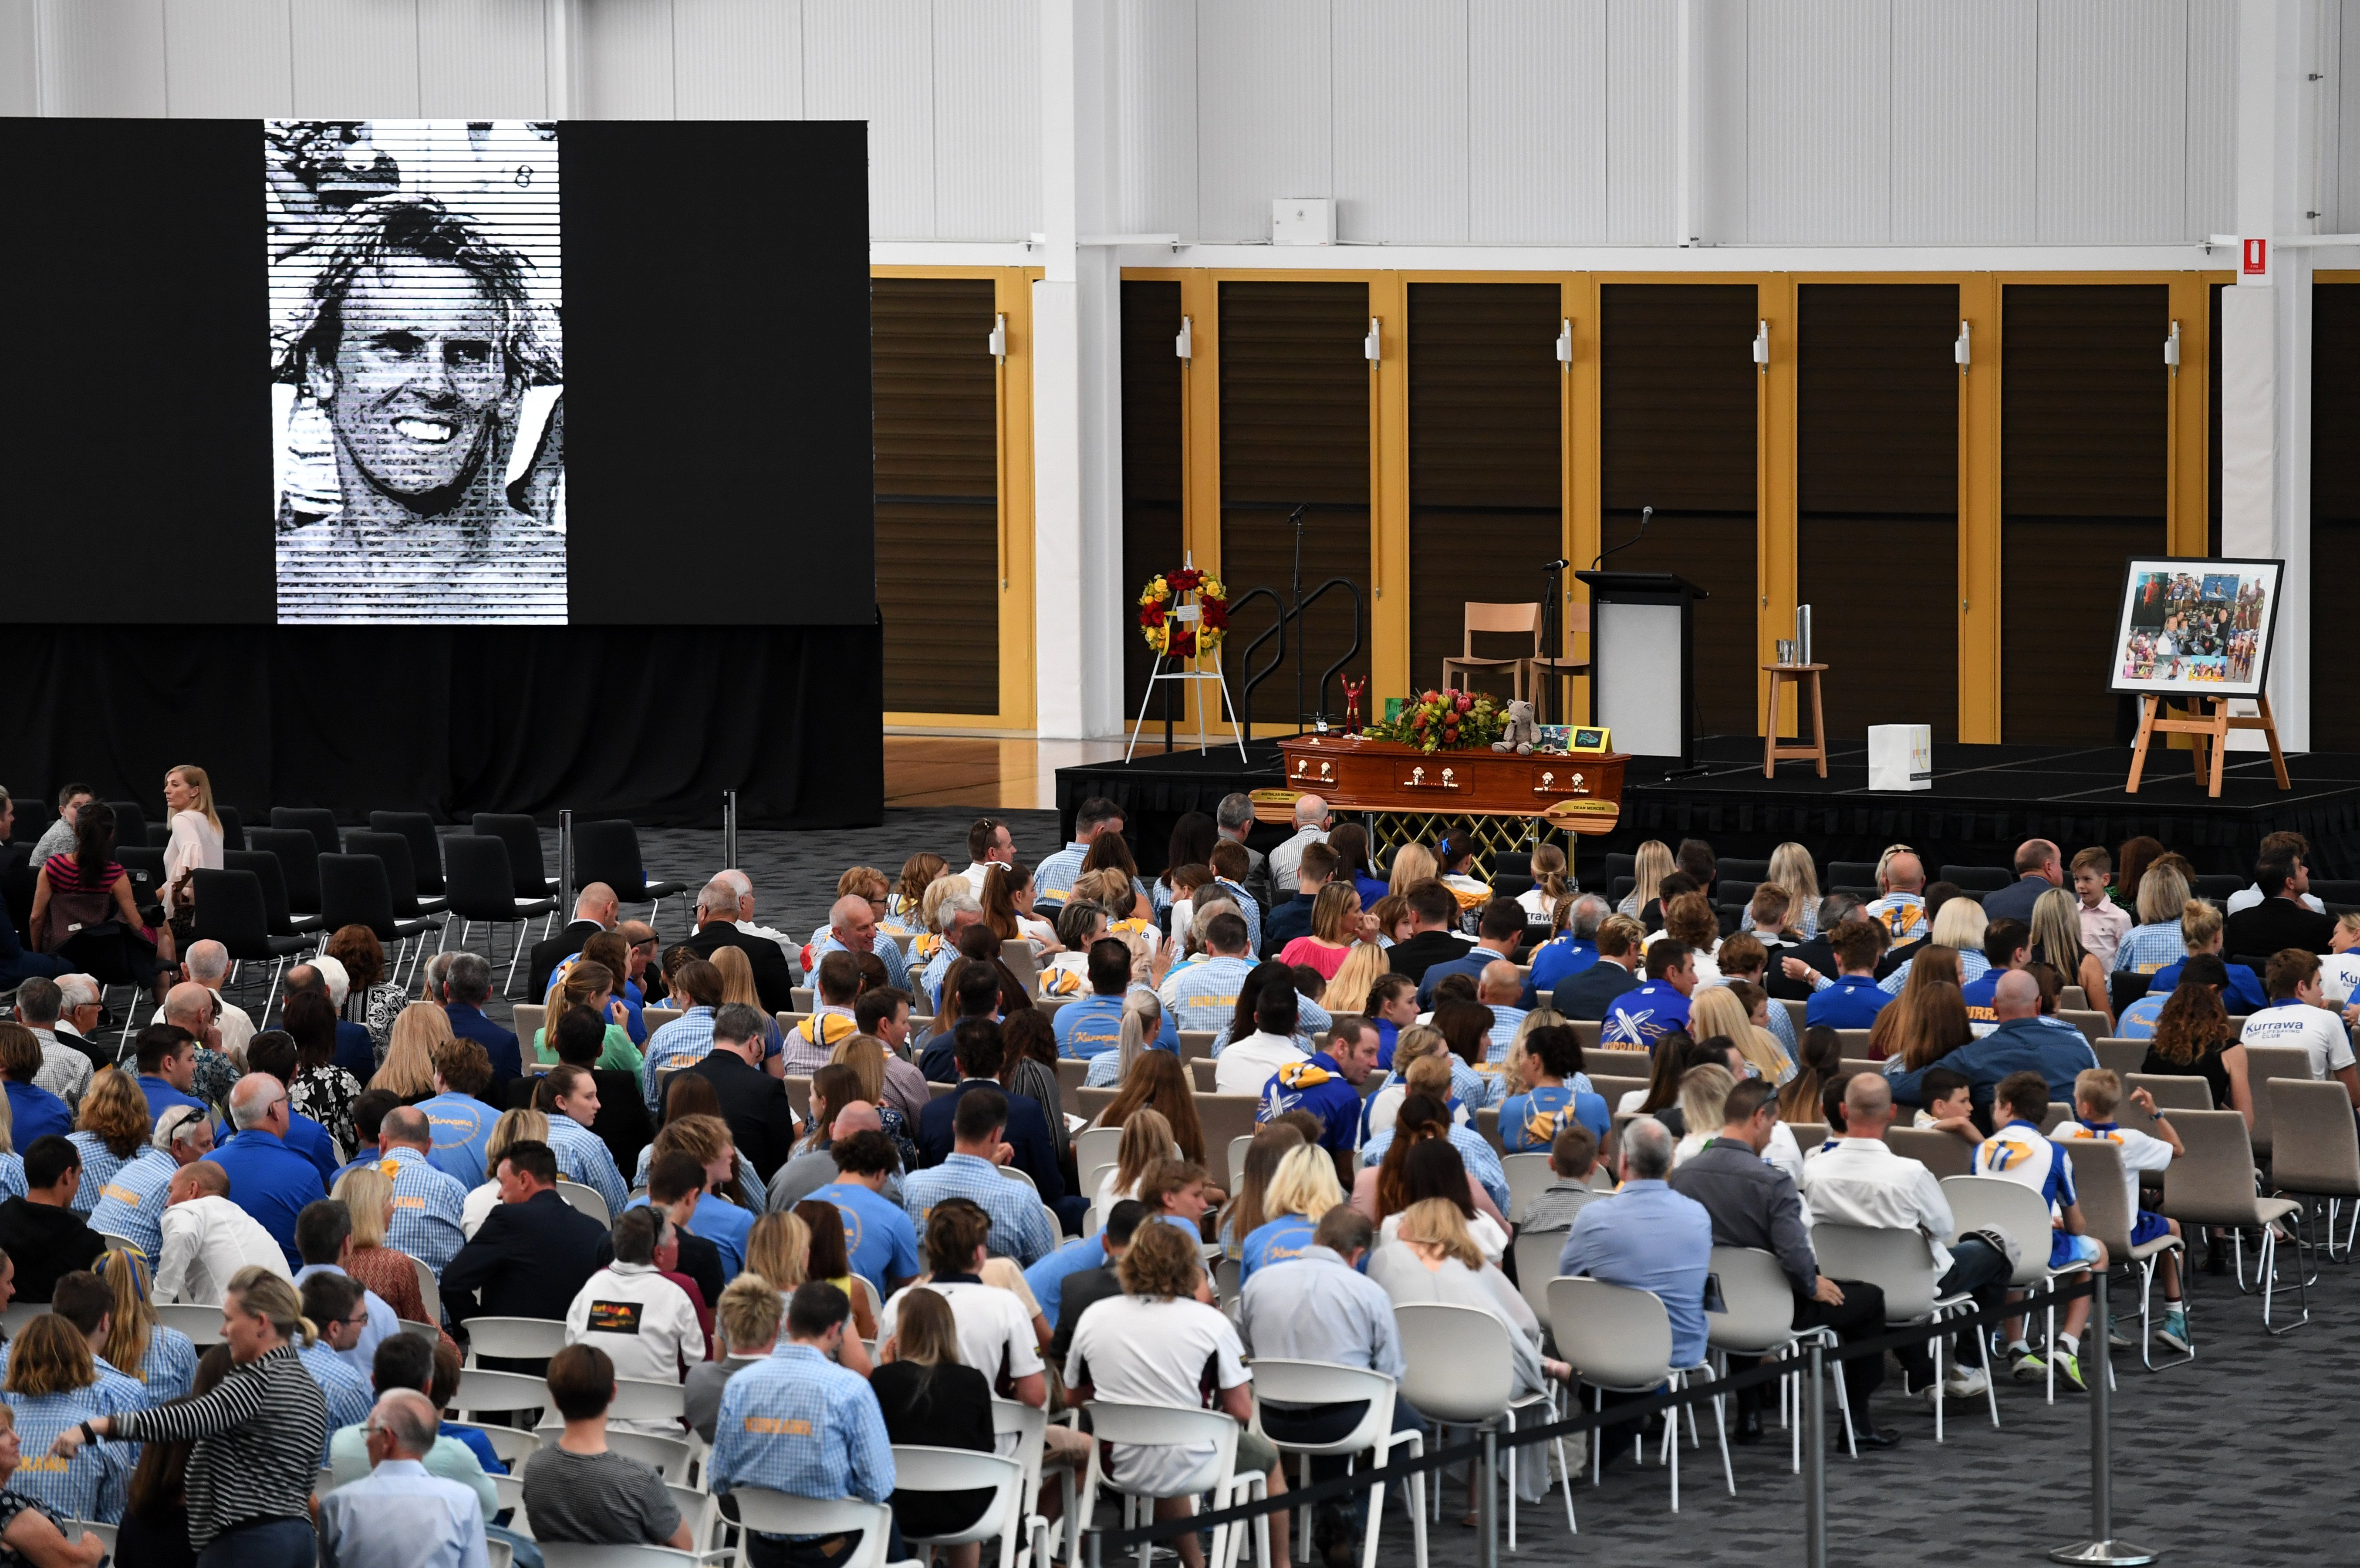 Mourners attend the memorial service for Dean Mercer on the Gold Coast. (AAP)